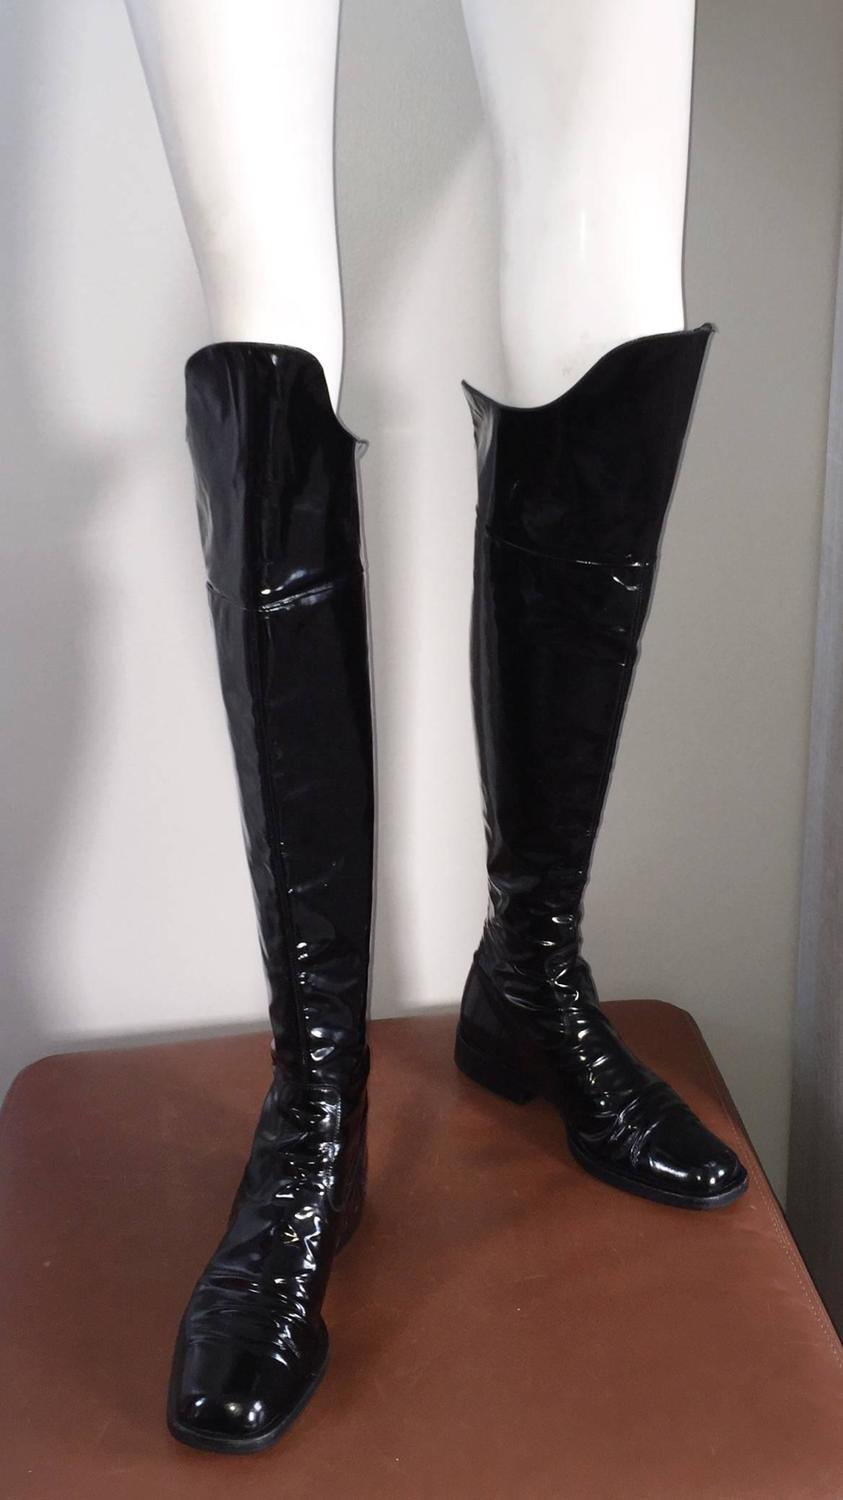 057908e8278 Coveted Chanel Black Patent Leather Over The Knee Riding Flat Boots Size 38  8 at 1stdibs